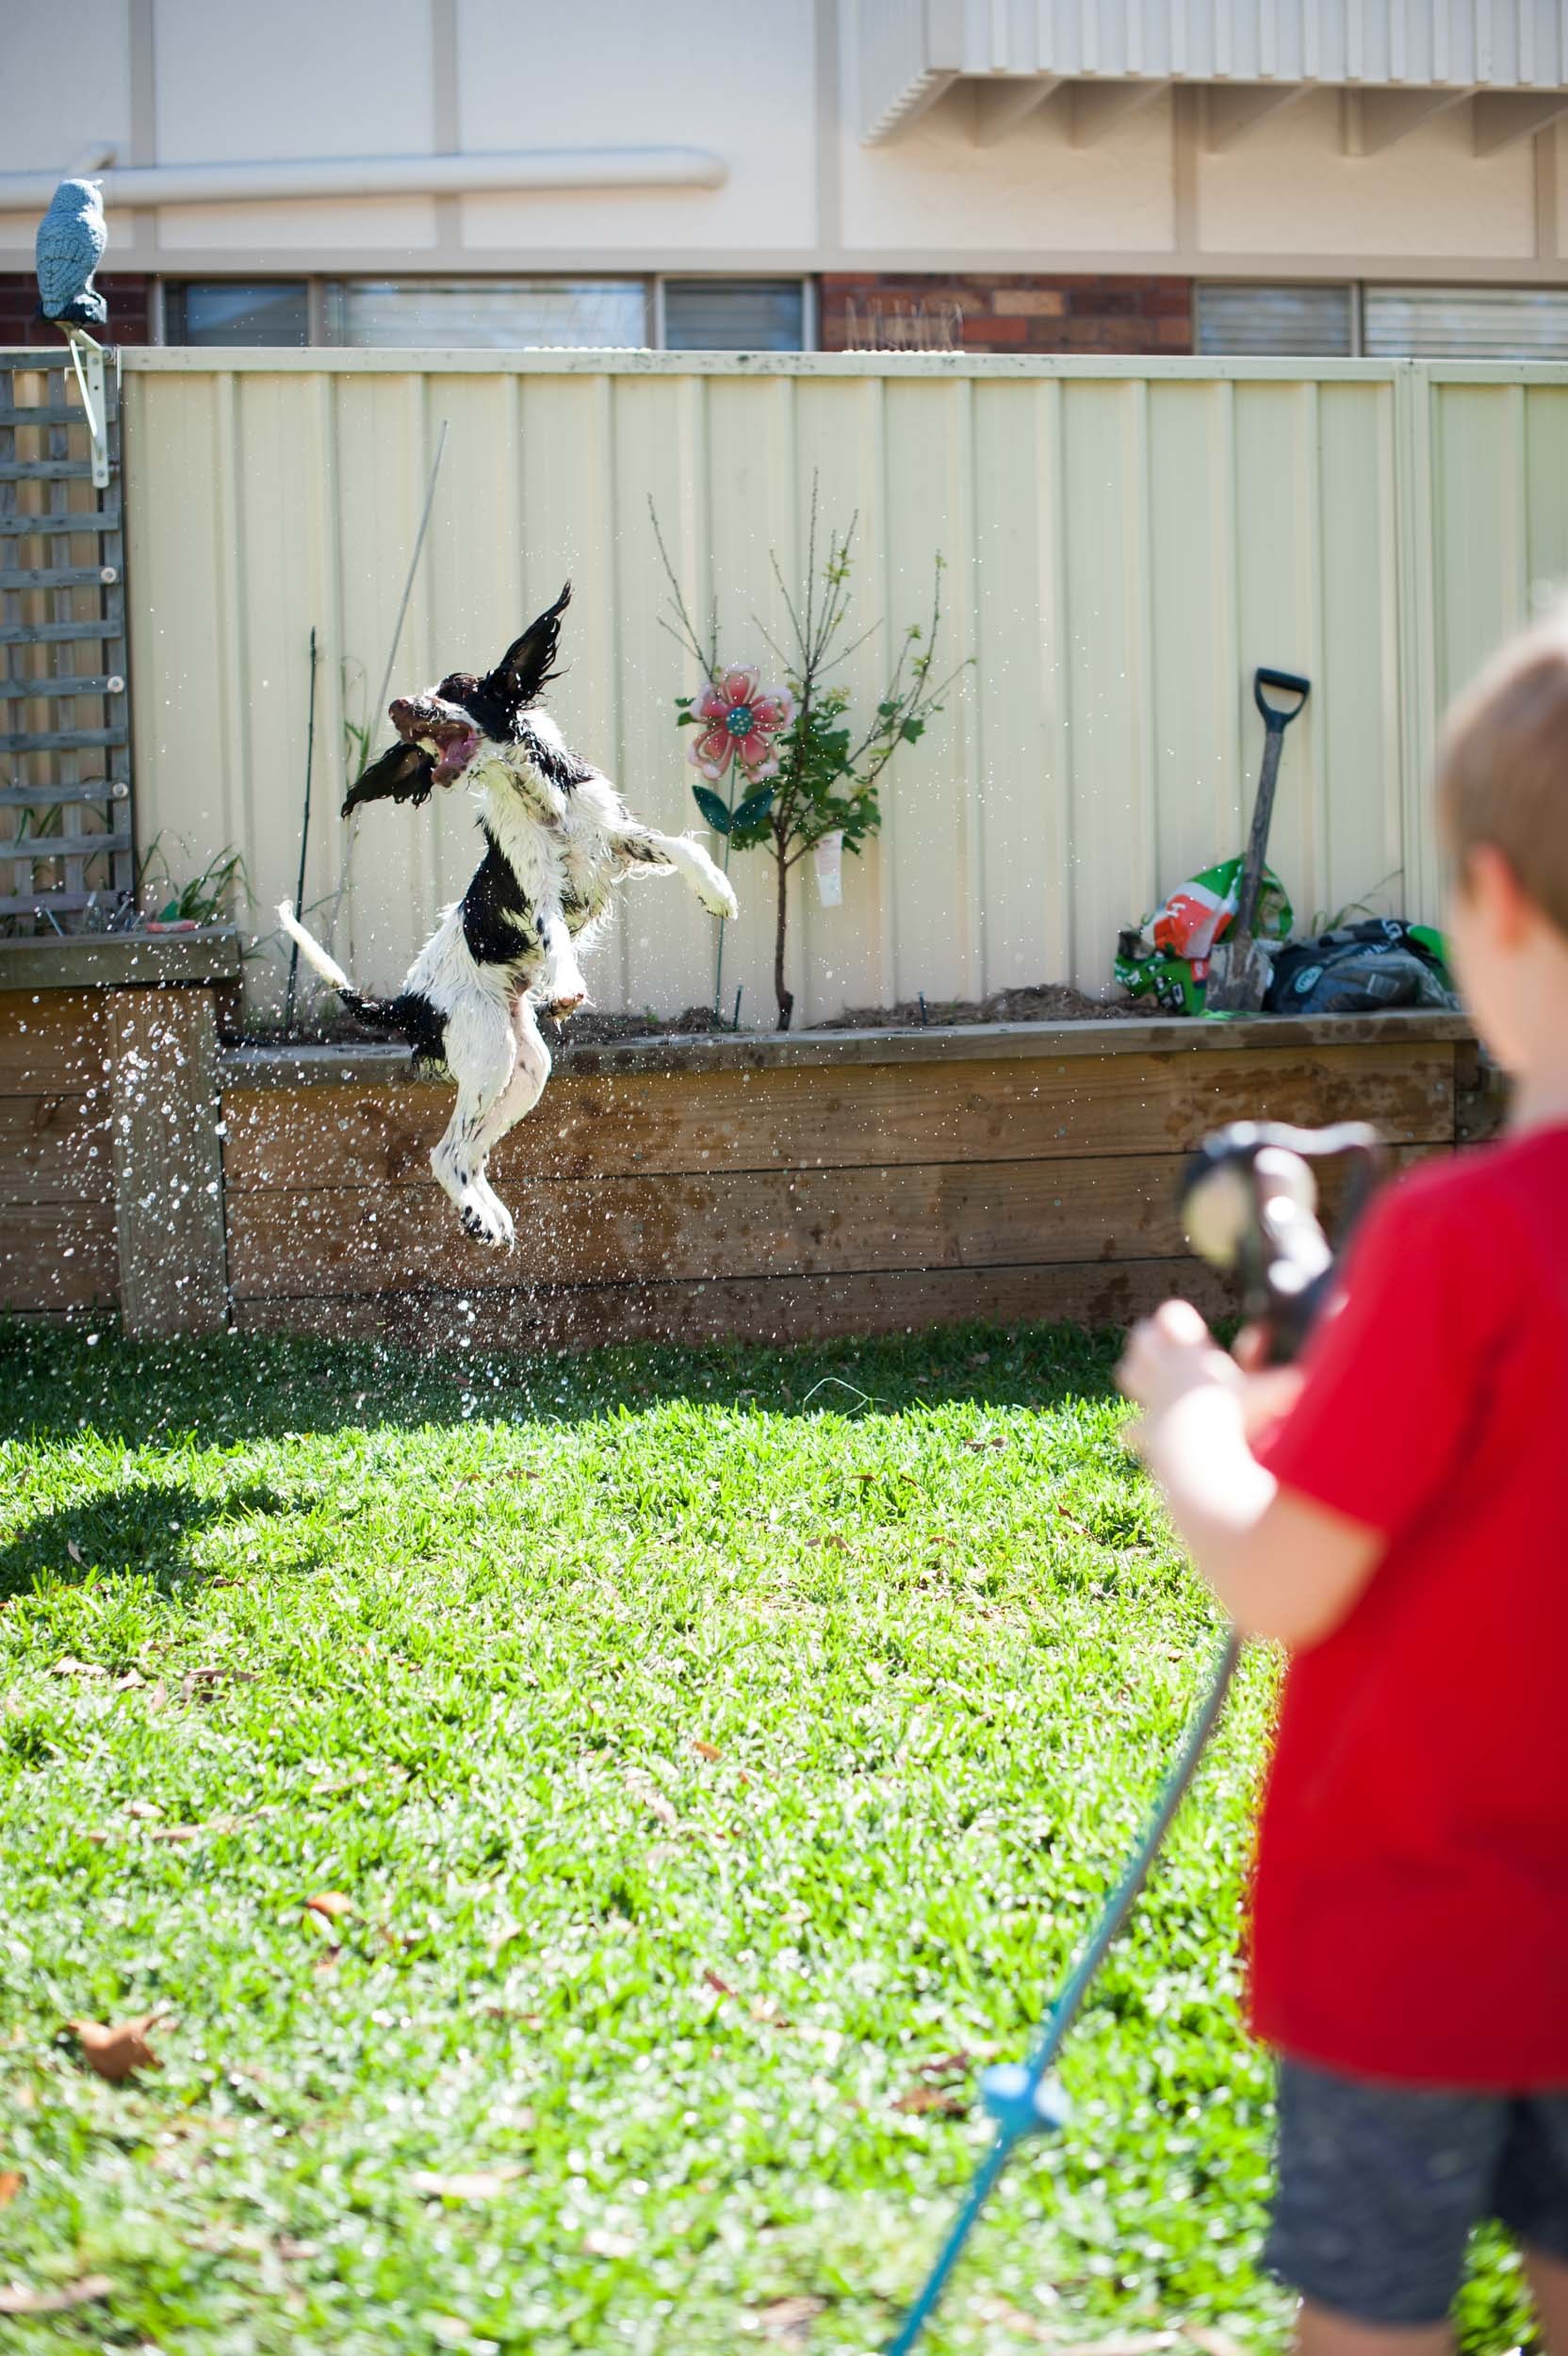 dog playing under the hose